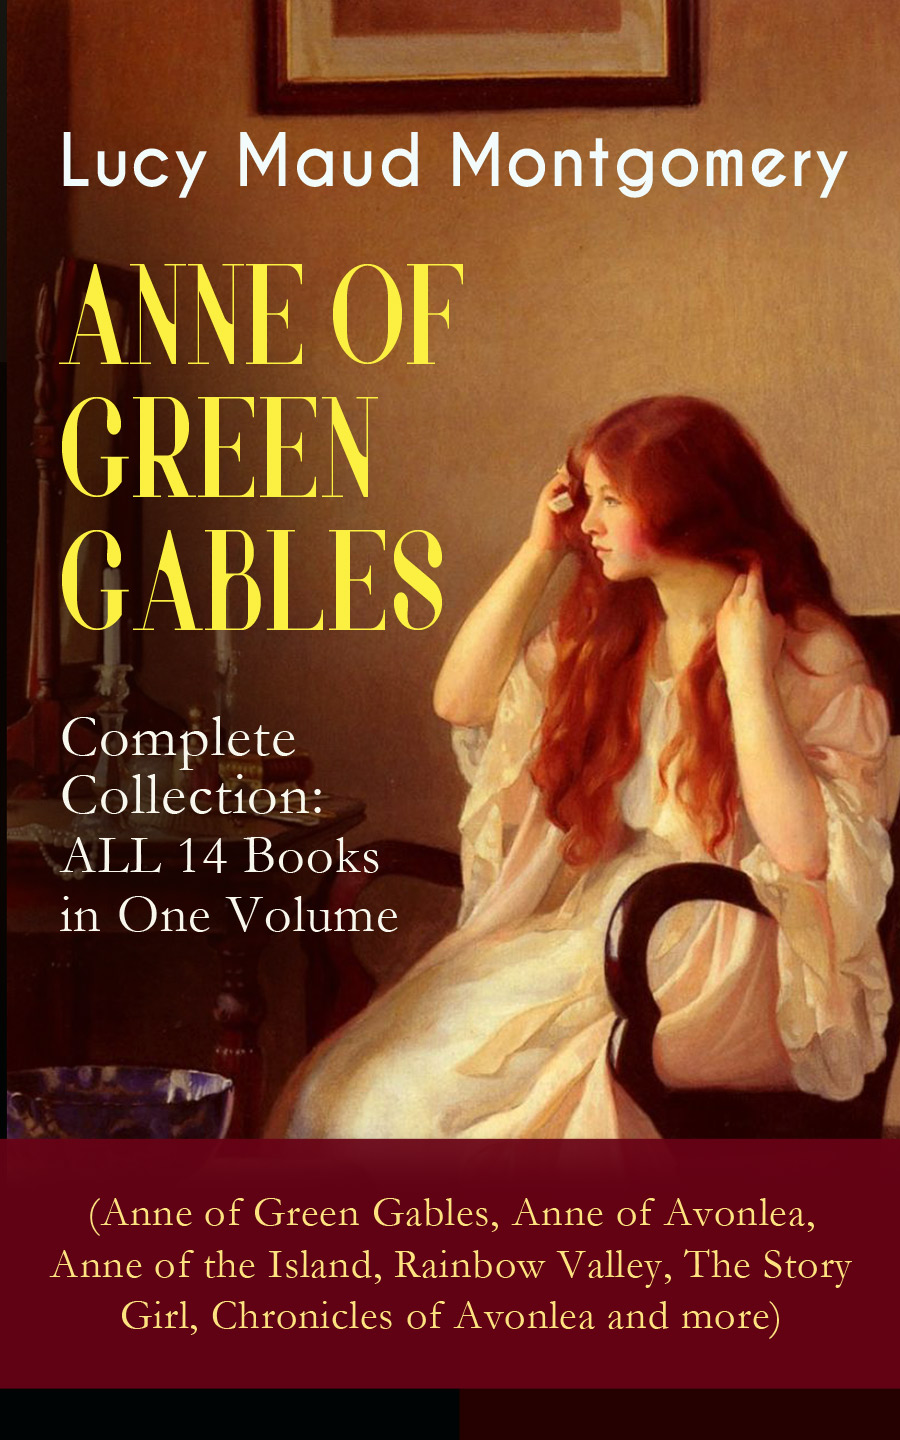 Lucy Maud Montgomery ANNE OF GREEN GABLES - Complete Collection: ALL 14 Books in One Volume (Anne of Green Gables, Anne of Avonlea, Anne of the Island, Rainbow Valley, The Story Girl, Chronicles of Avonlea and more) marquis of ruvigny and raineval the plantagenet roll of the blood royal being a complete table of all the descendants now living of edward iii king of england the anne of exeter volume containing the descendants of anne plantagenet duchess of exeter